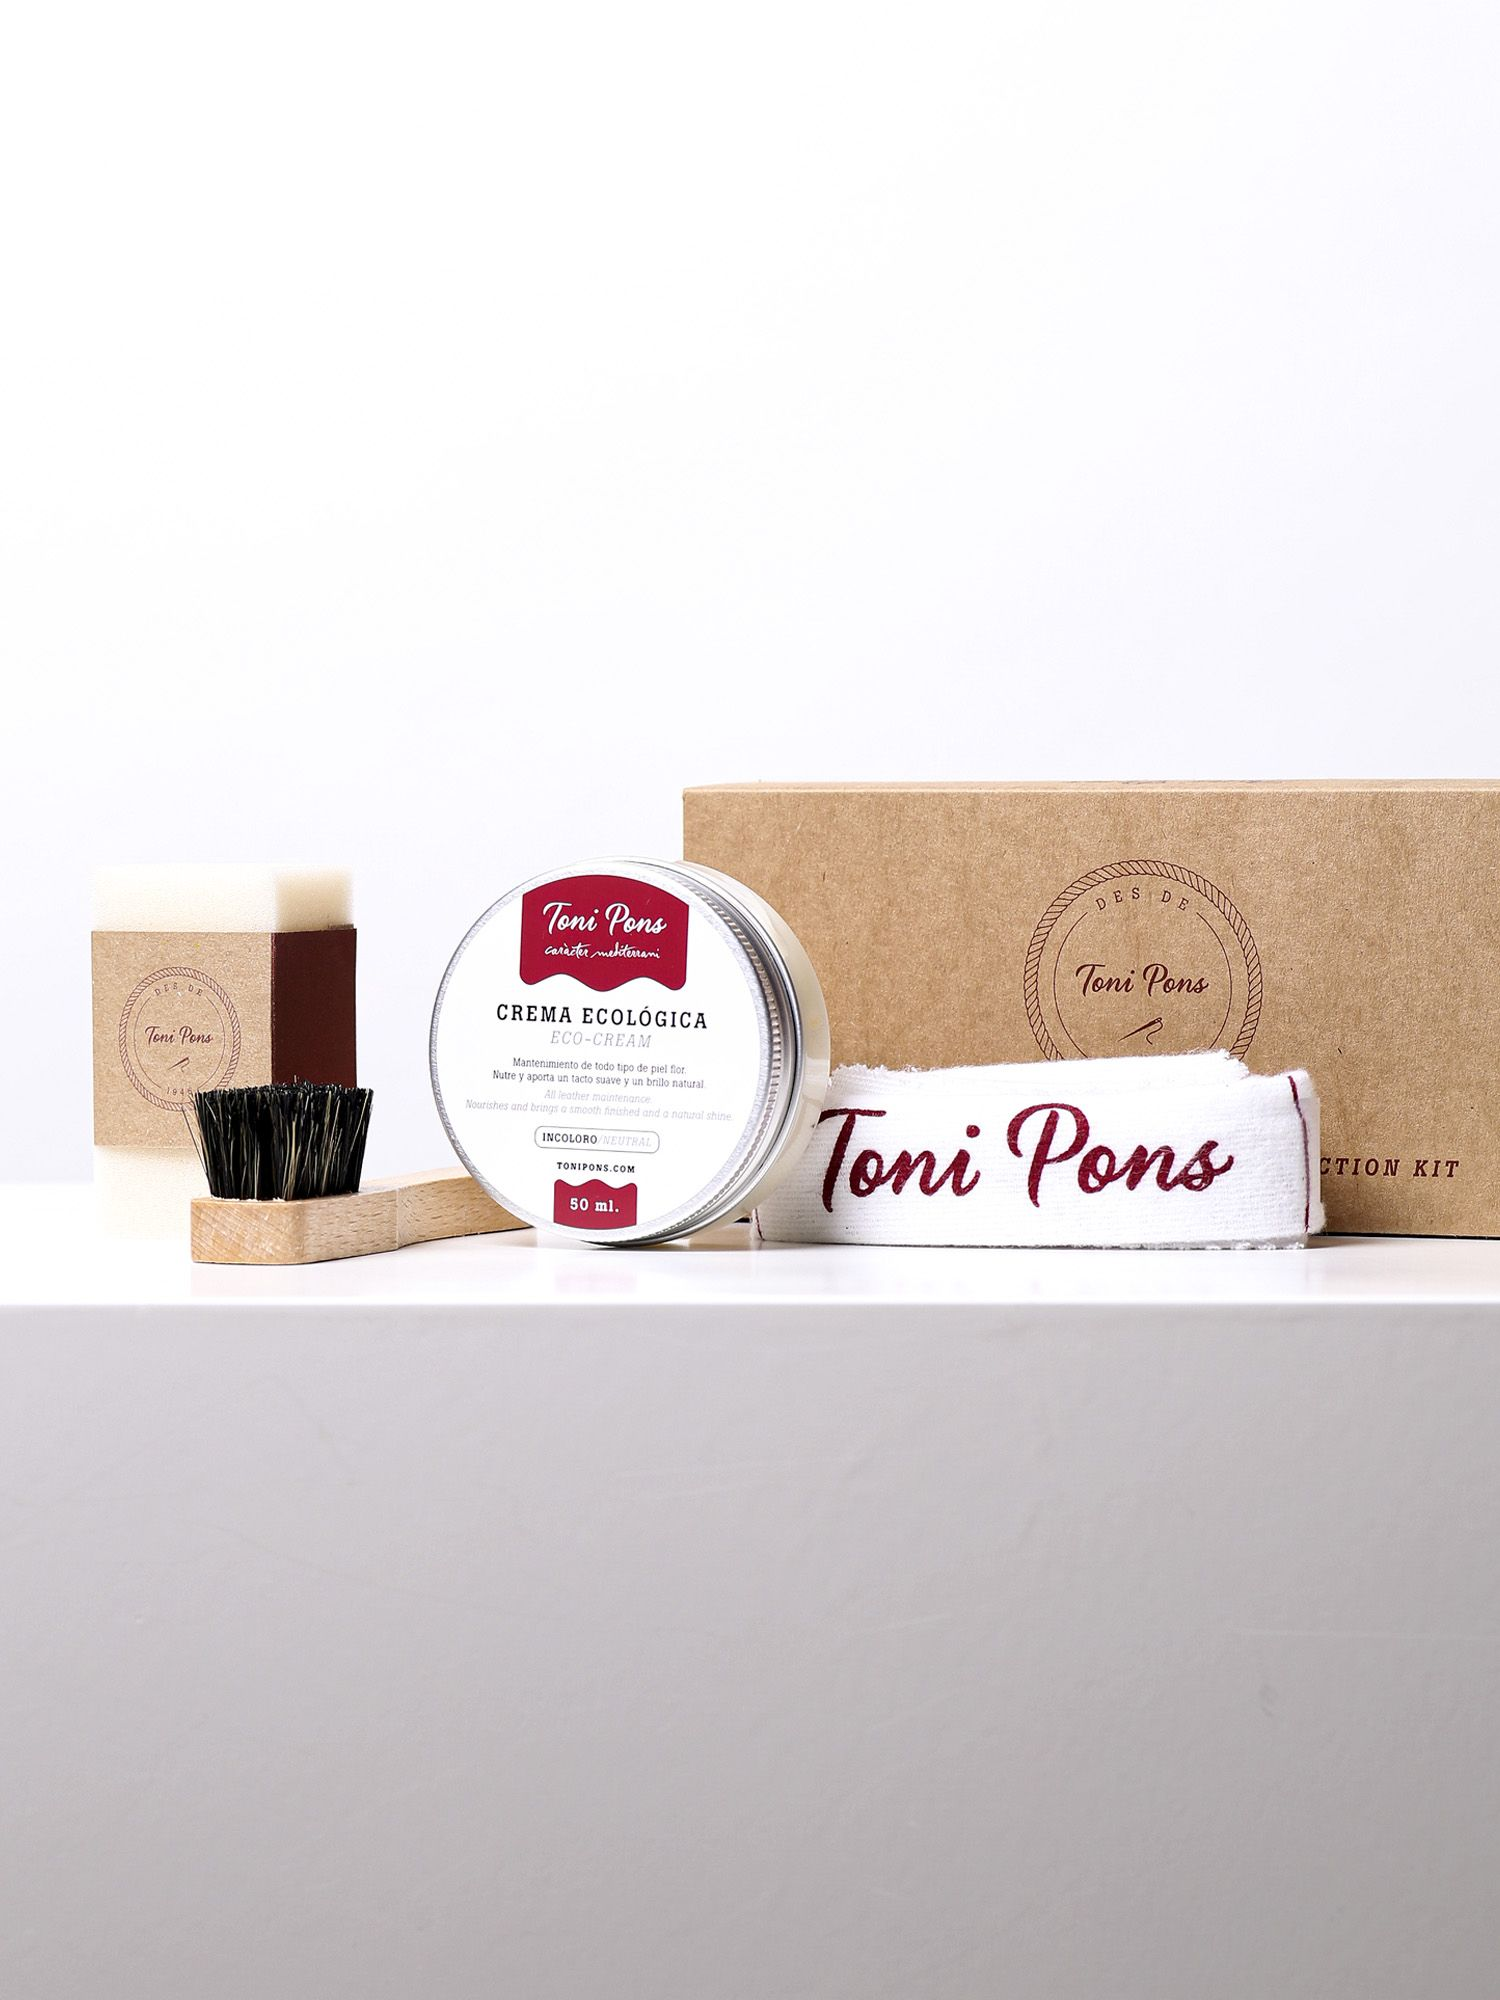 KIT PROTECTOR - Pot 50ml protector for skin with Sponge, wiper and brush Toni Pons.